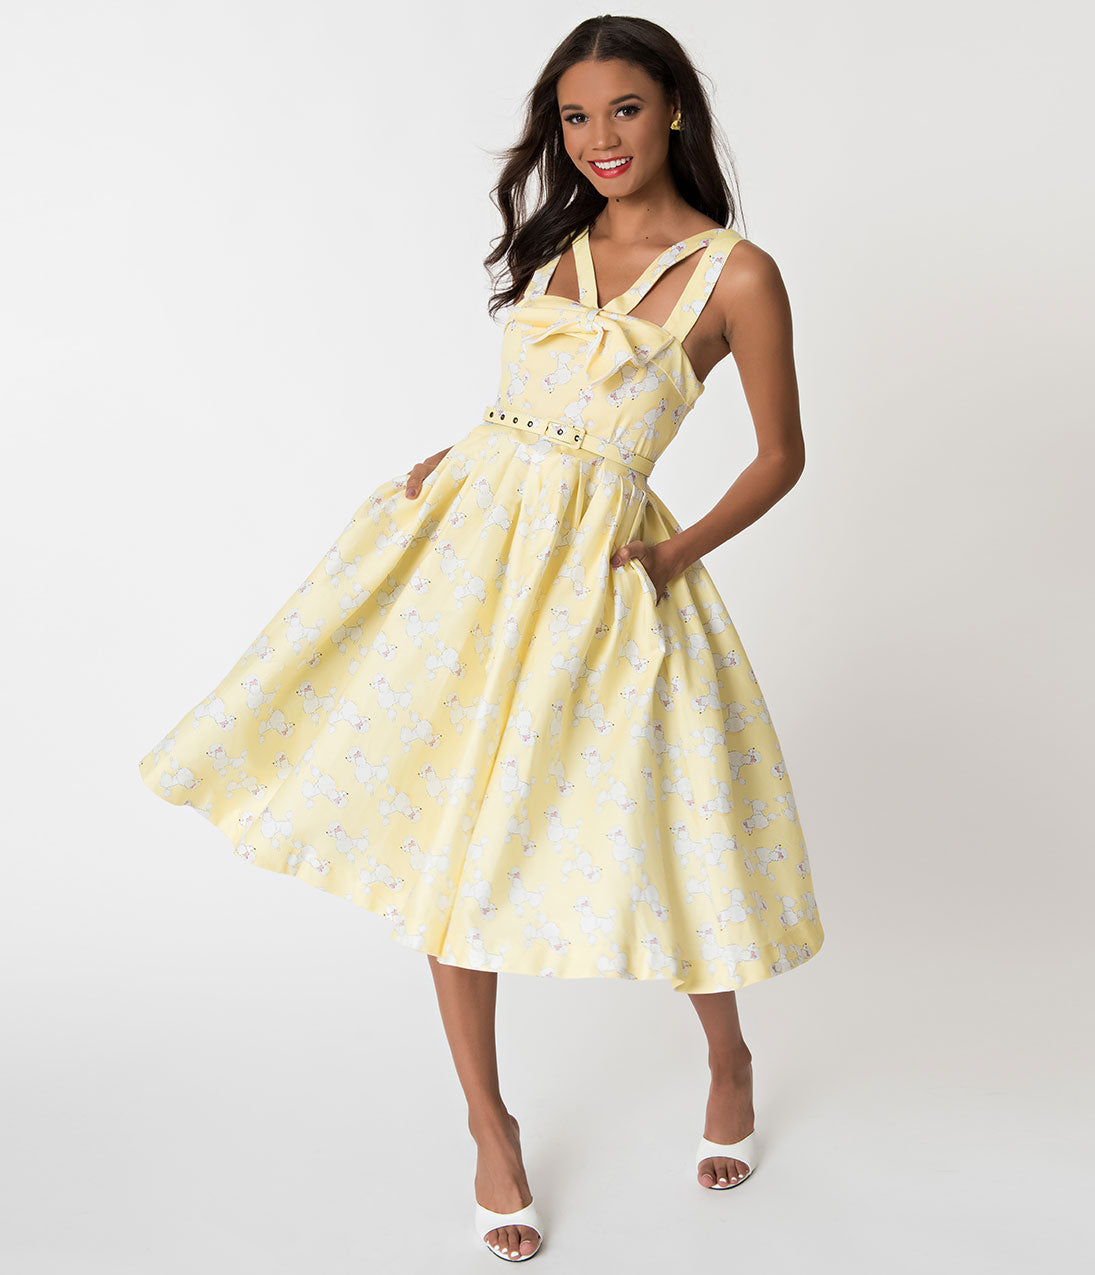 Vintage 50s Dresses: 8 Classic Retro Styles Poodle Print Swing Dress $134.00 AT vintagedancer.com